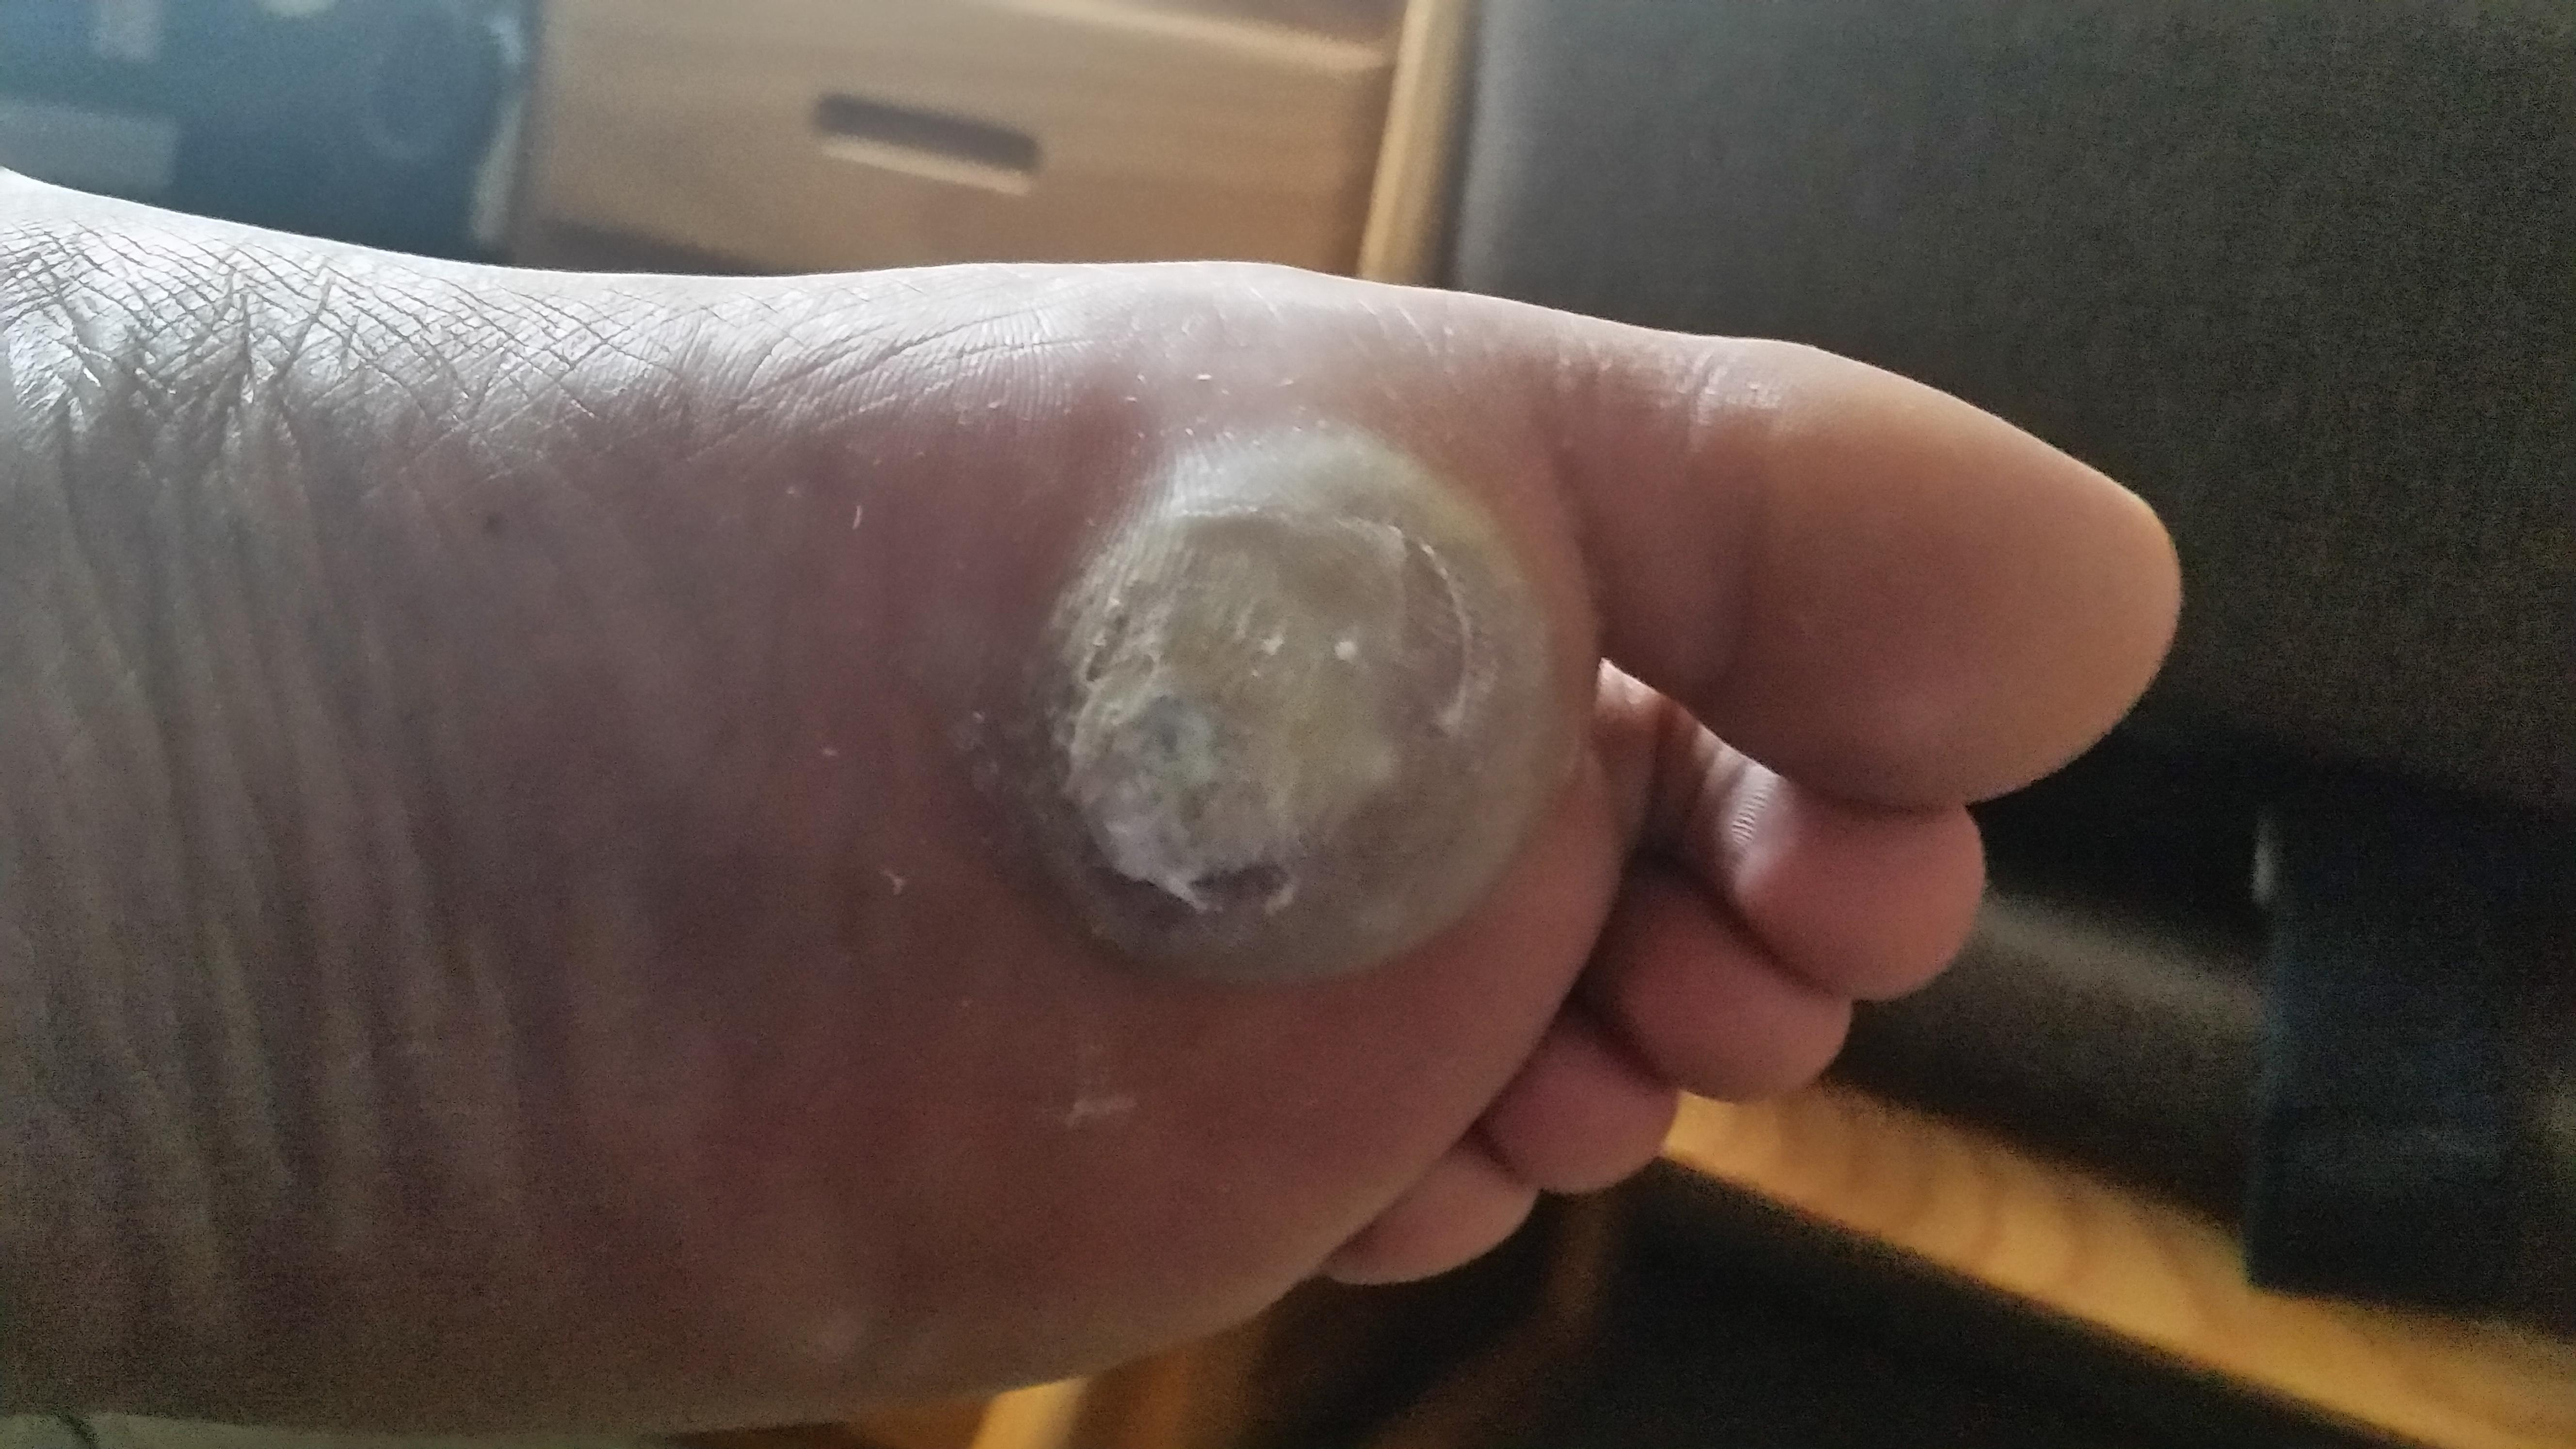 Wart treatment that blisters